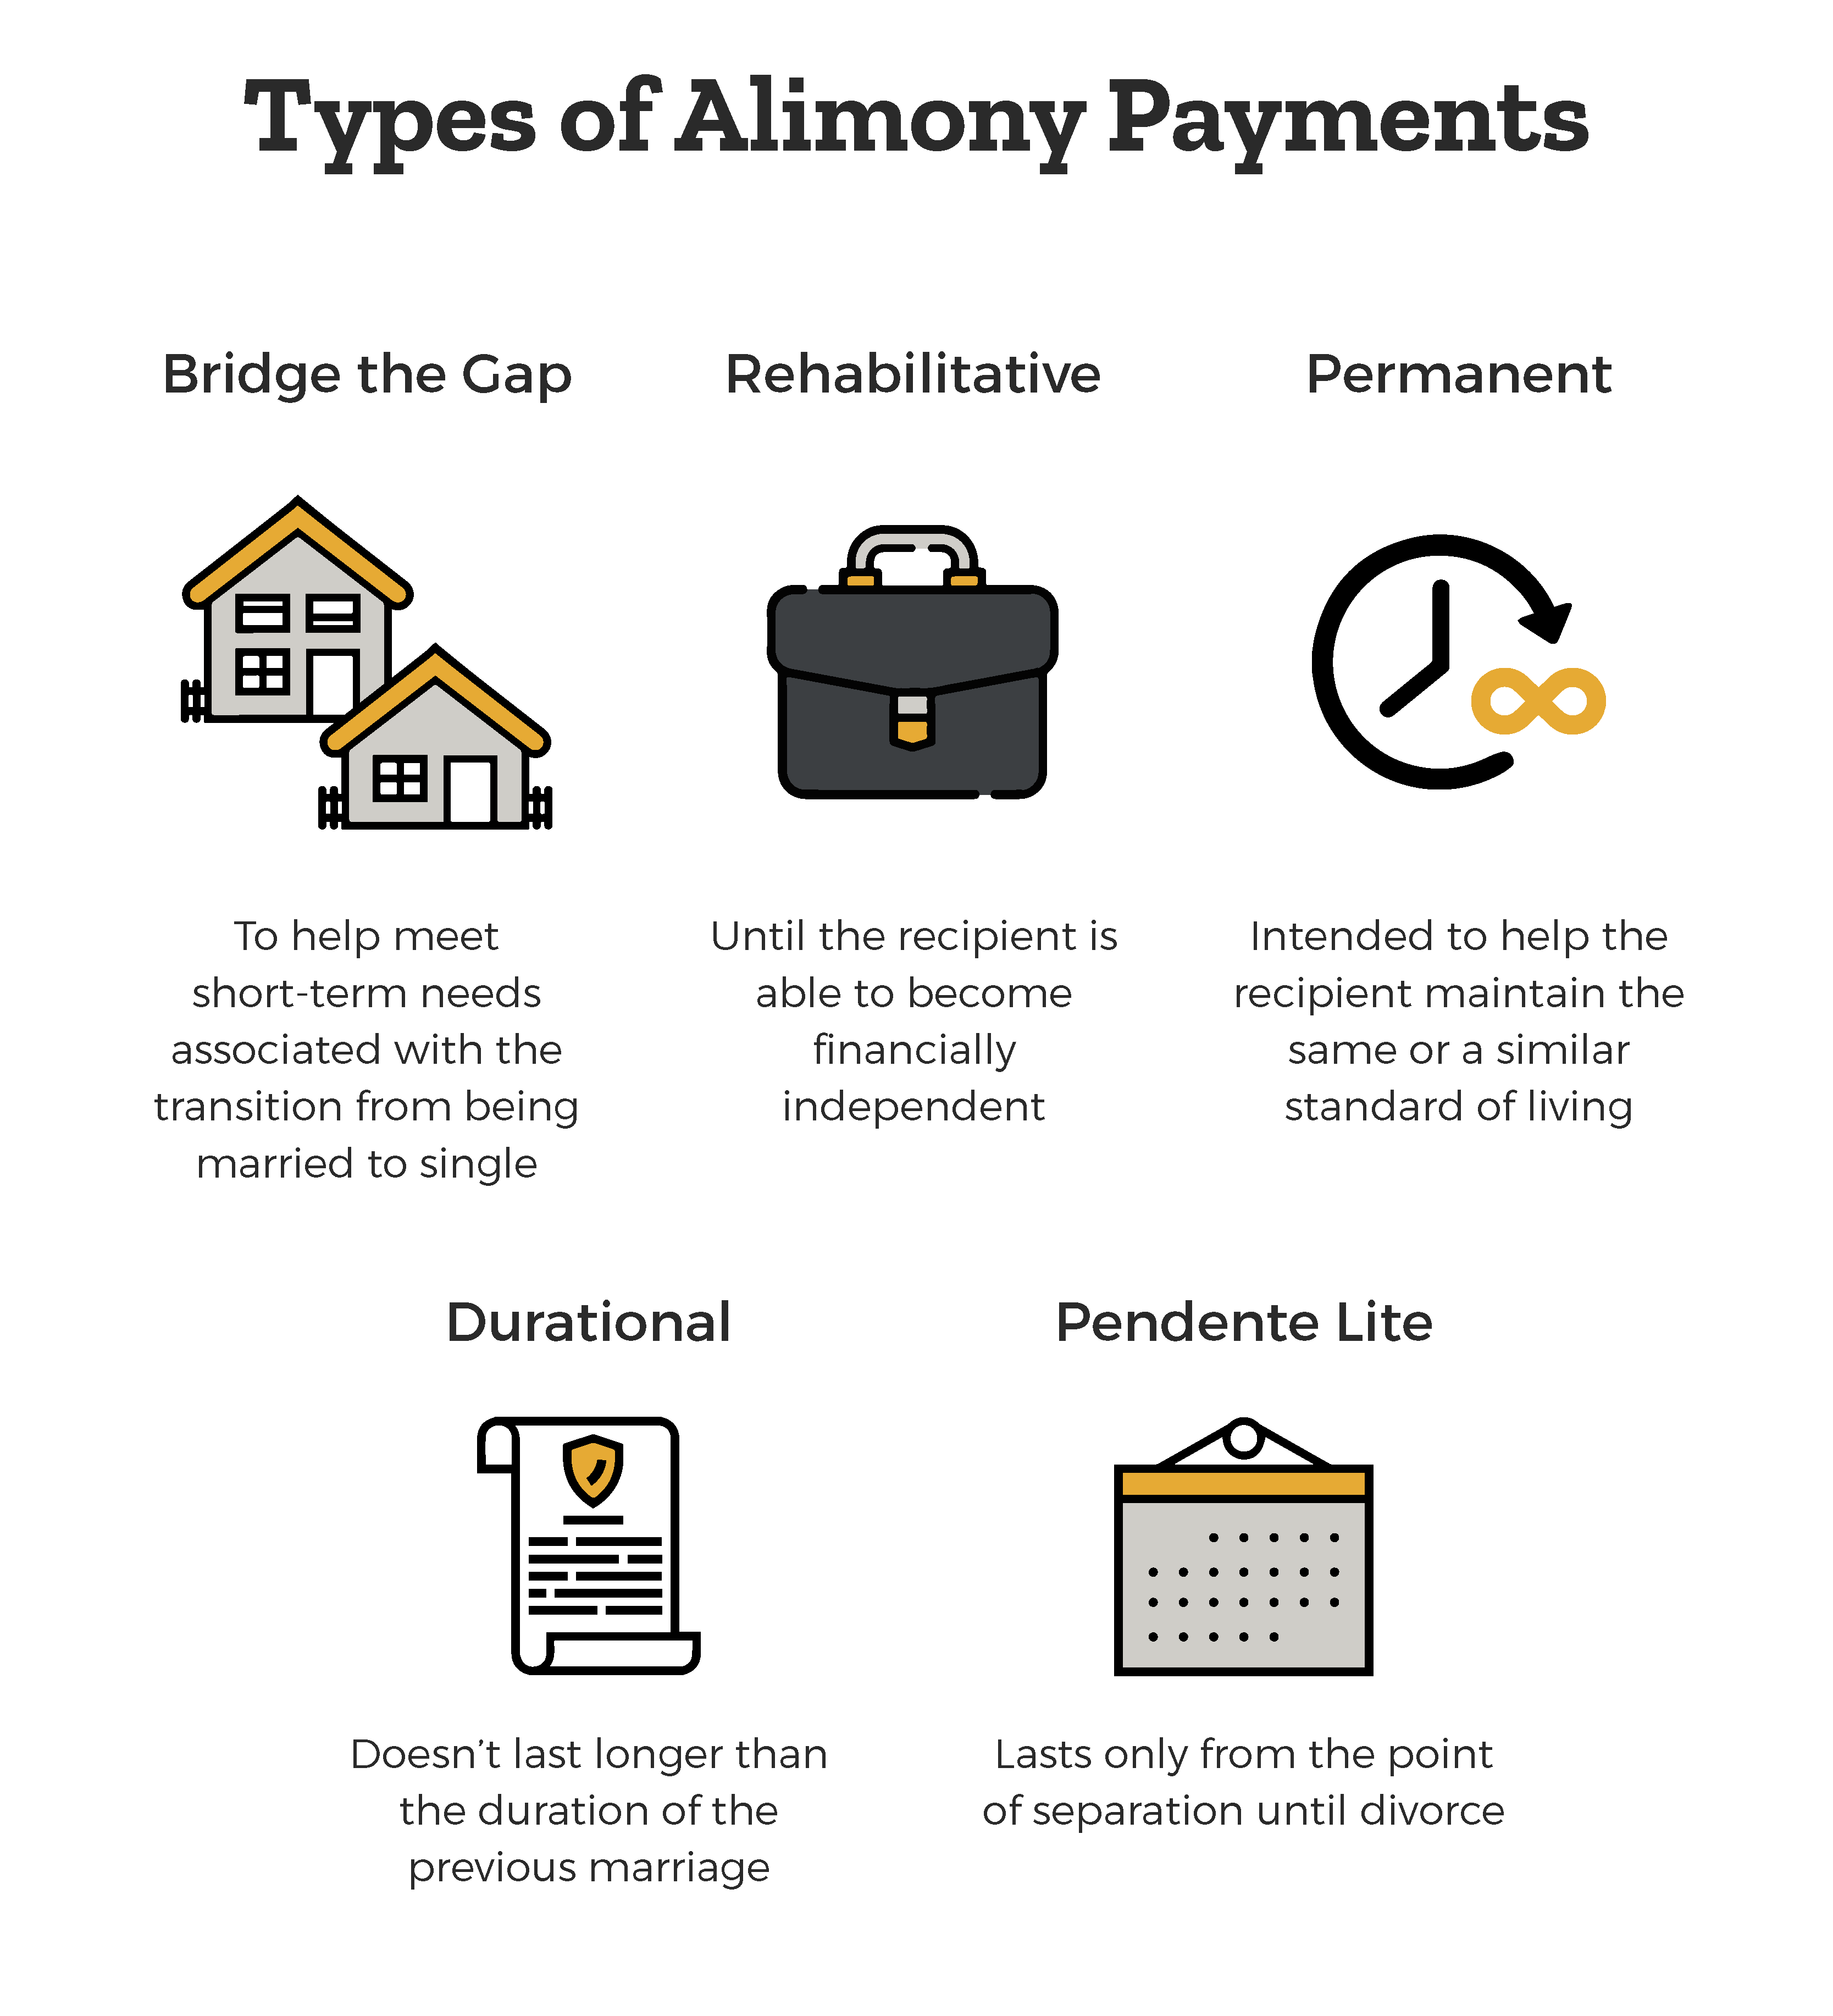 types-of-alimony-payments-bridge-the-gap-rehabilitative-permanent-durational-pendente-lite